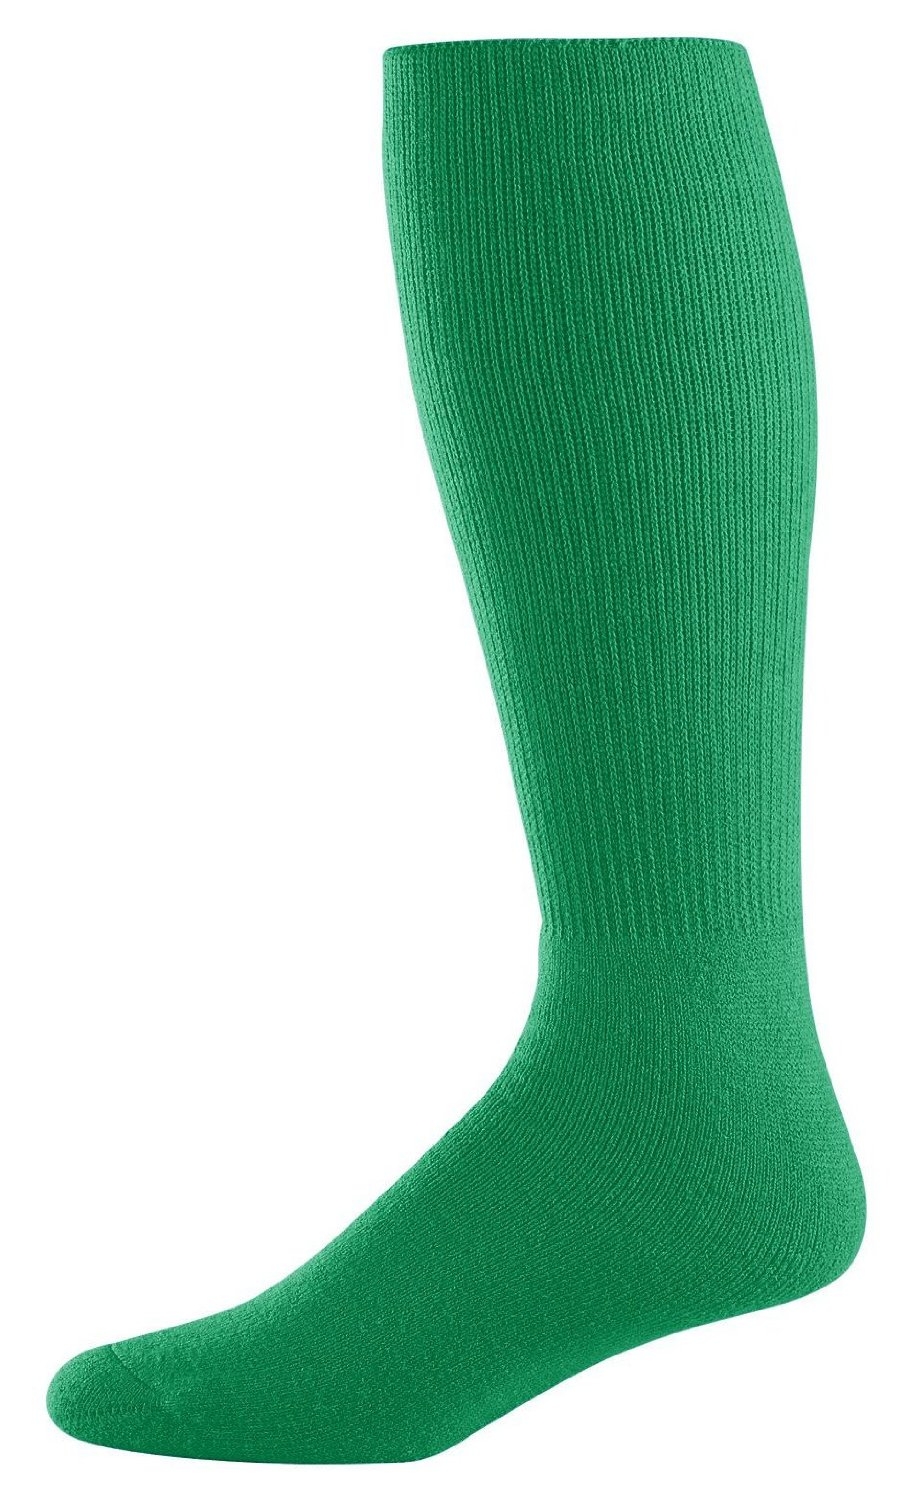 Athletic Socks - Youth Size 7-9, Color: Kelly, Size: 7 - 9